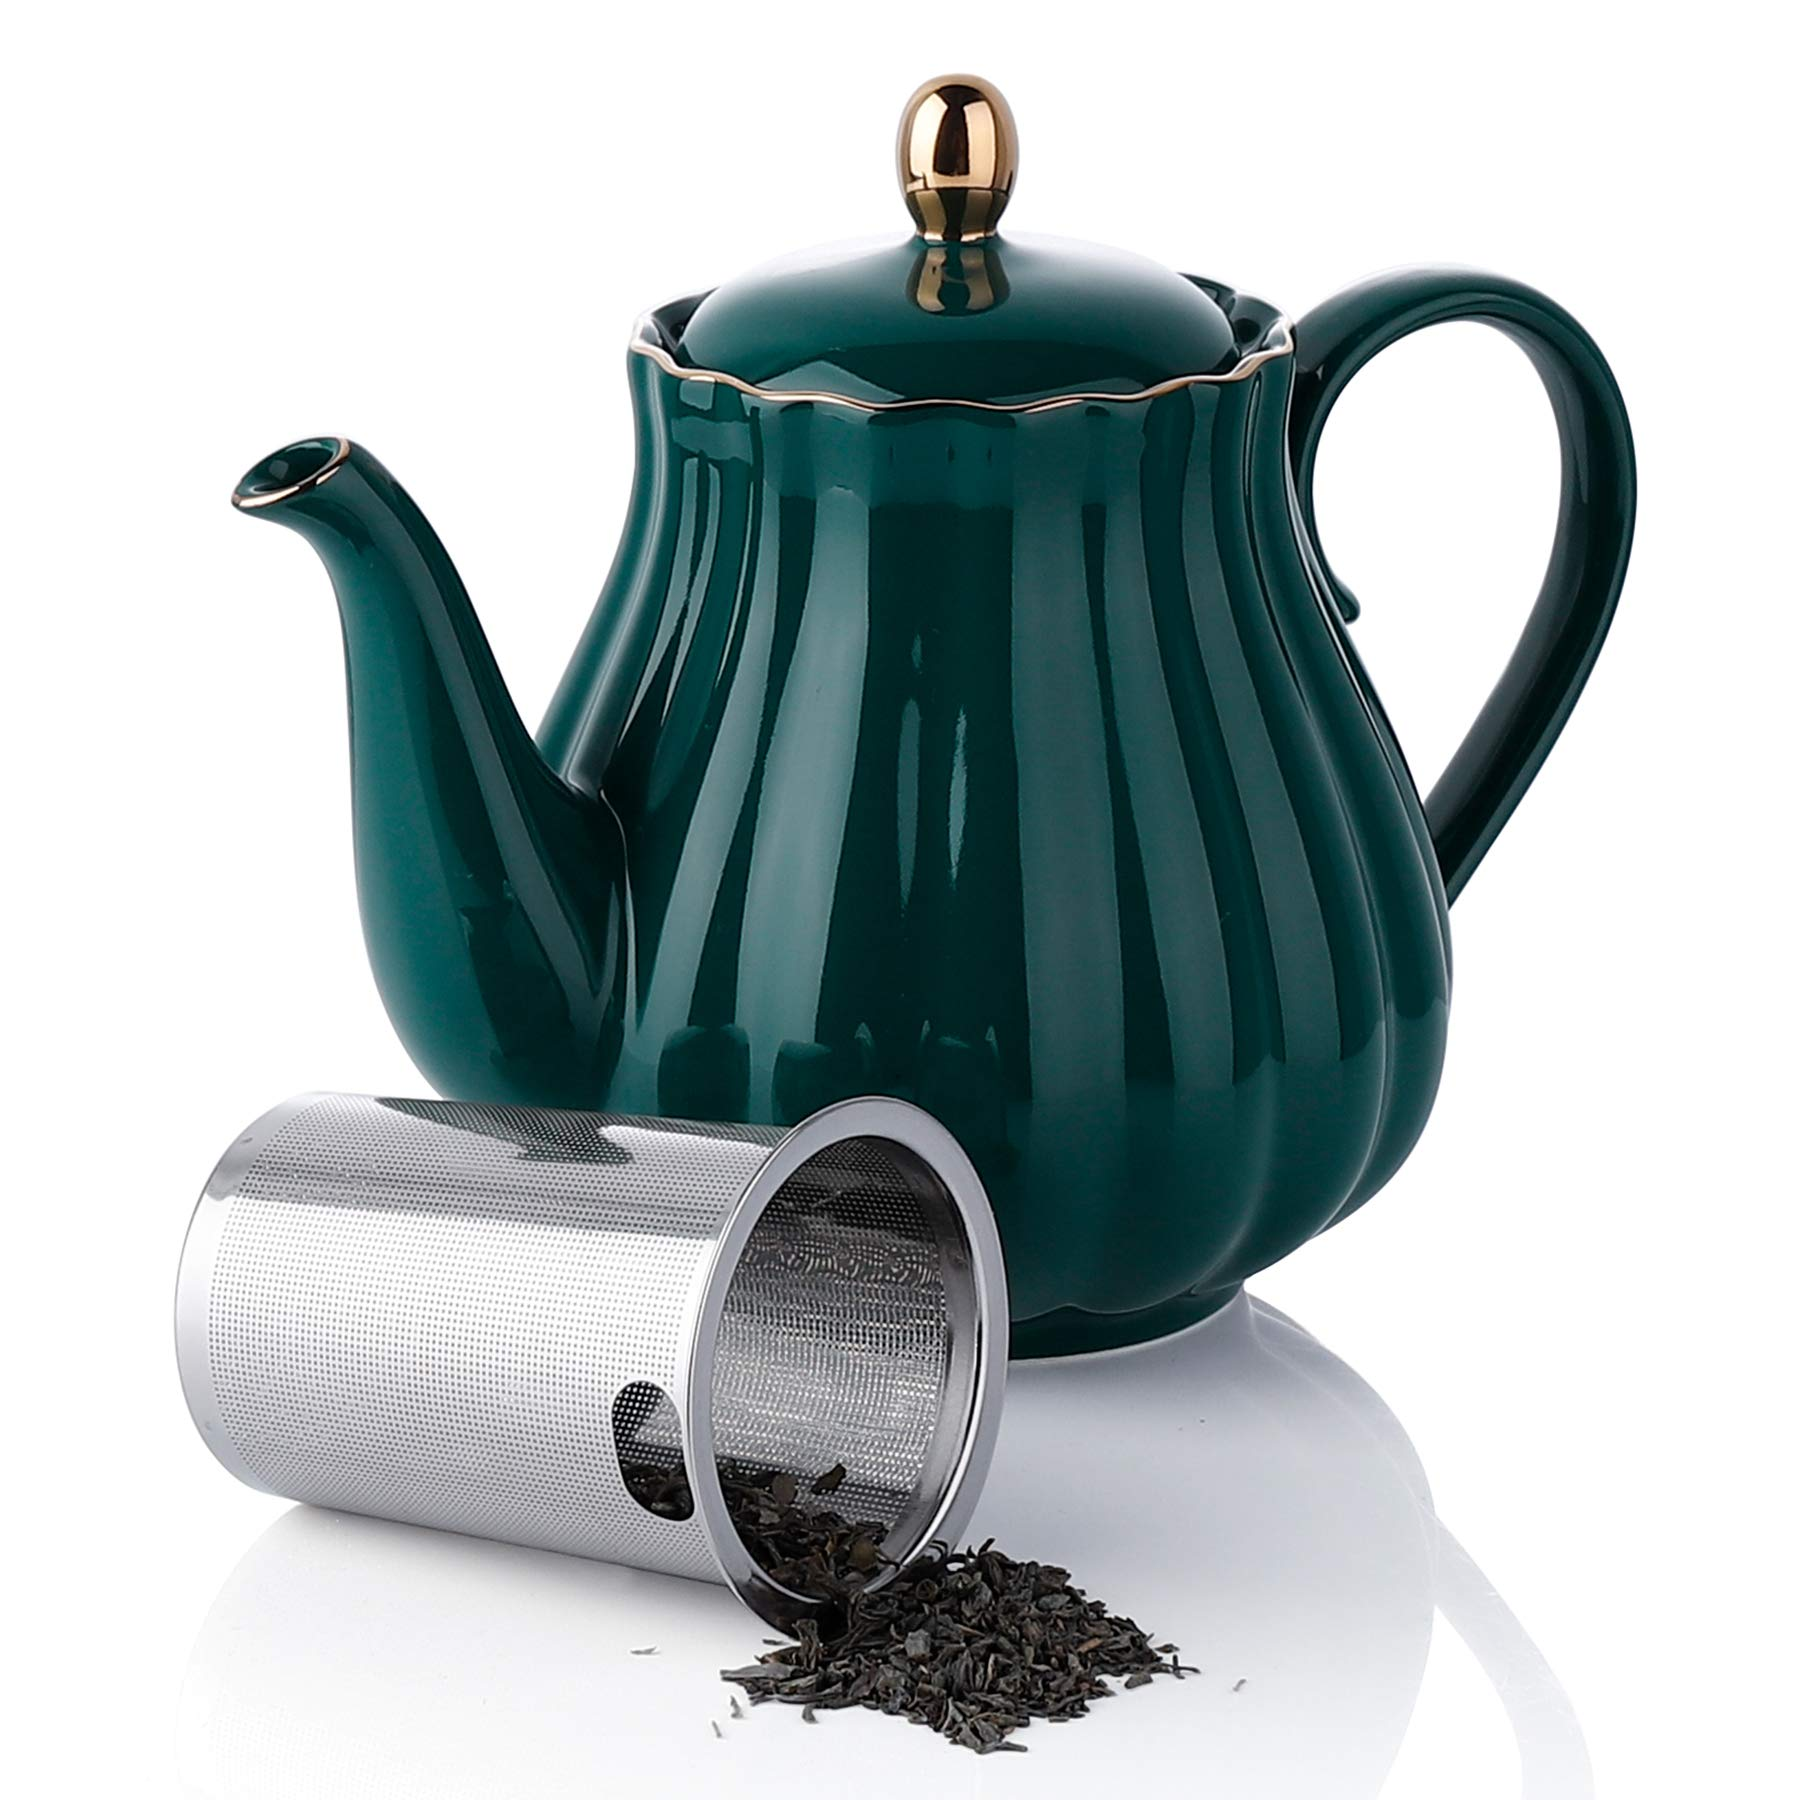 Amazingware Royal Teapot, Porcelain Tea Pot with Stainless Steel Infuser, with a Filter for Loose Tea, Pumpkin Fluted Shape - 28 oz, Dark Green